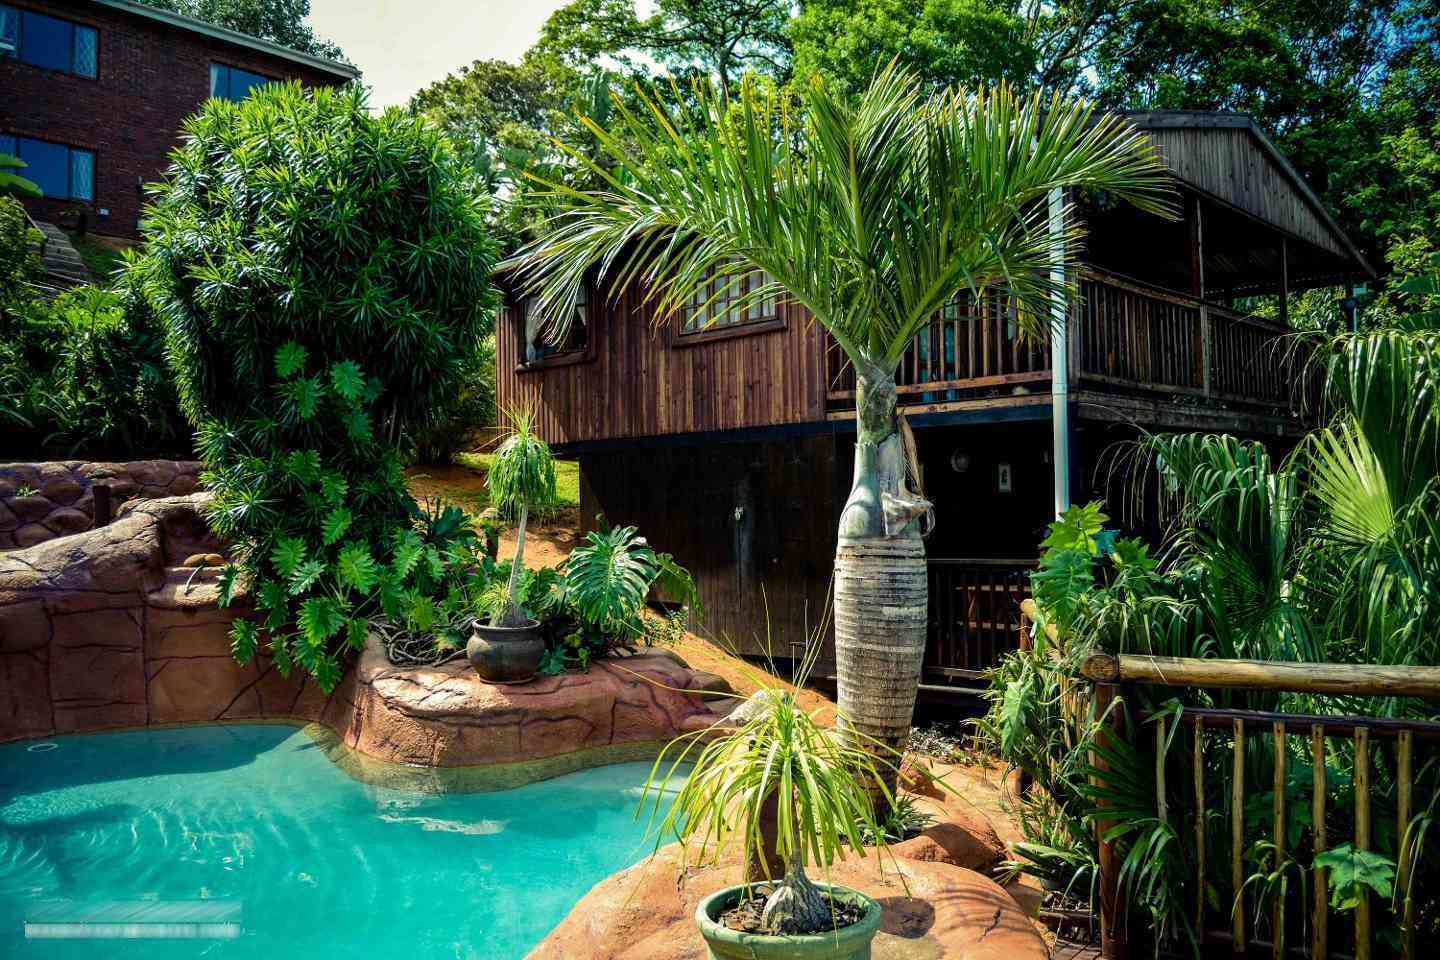 Guest House Pool Houses: Rocky Pool Guest Cottage, Durban, South Africa